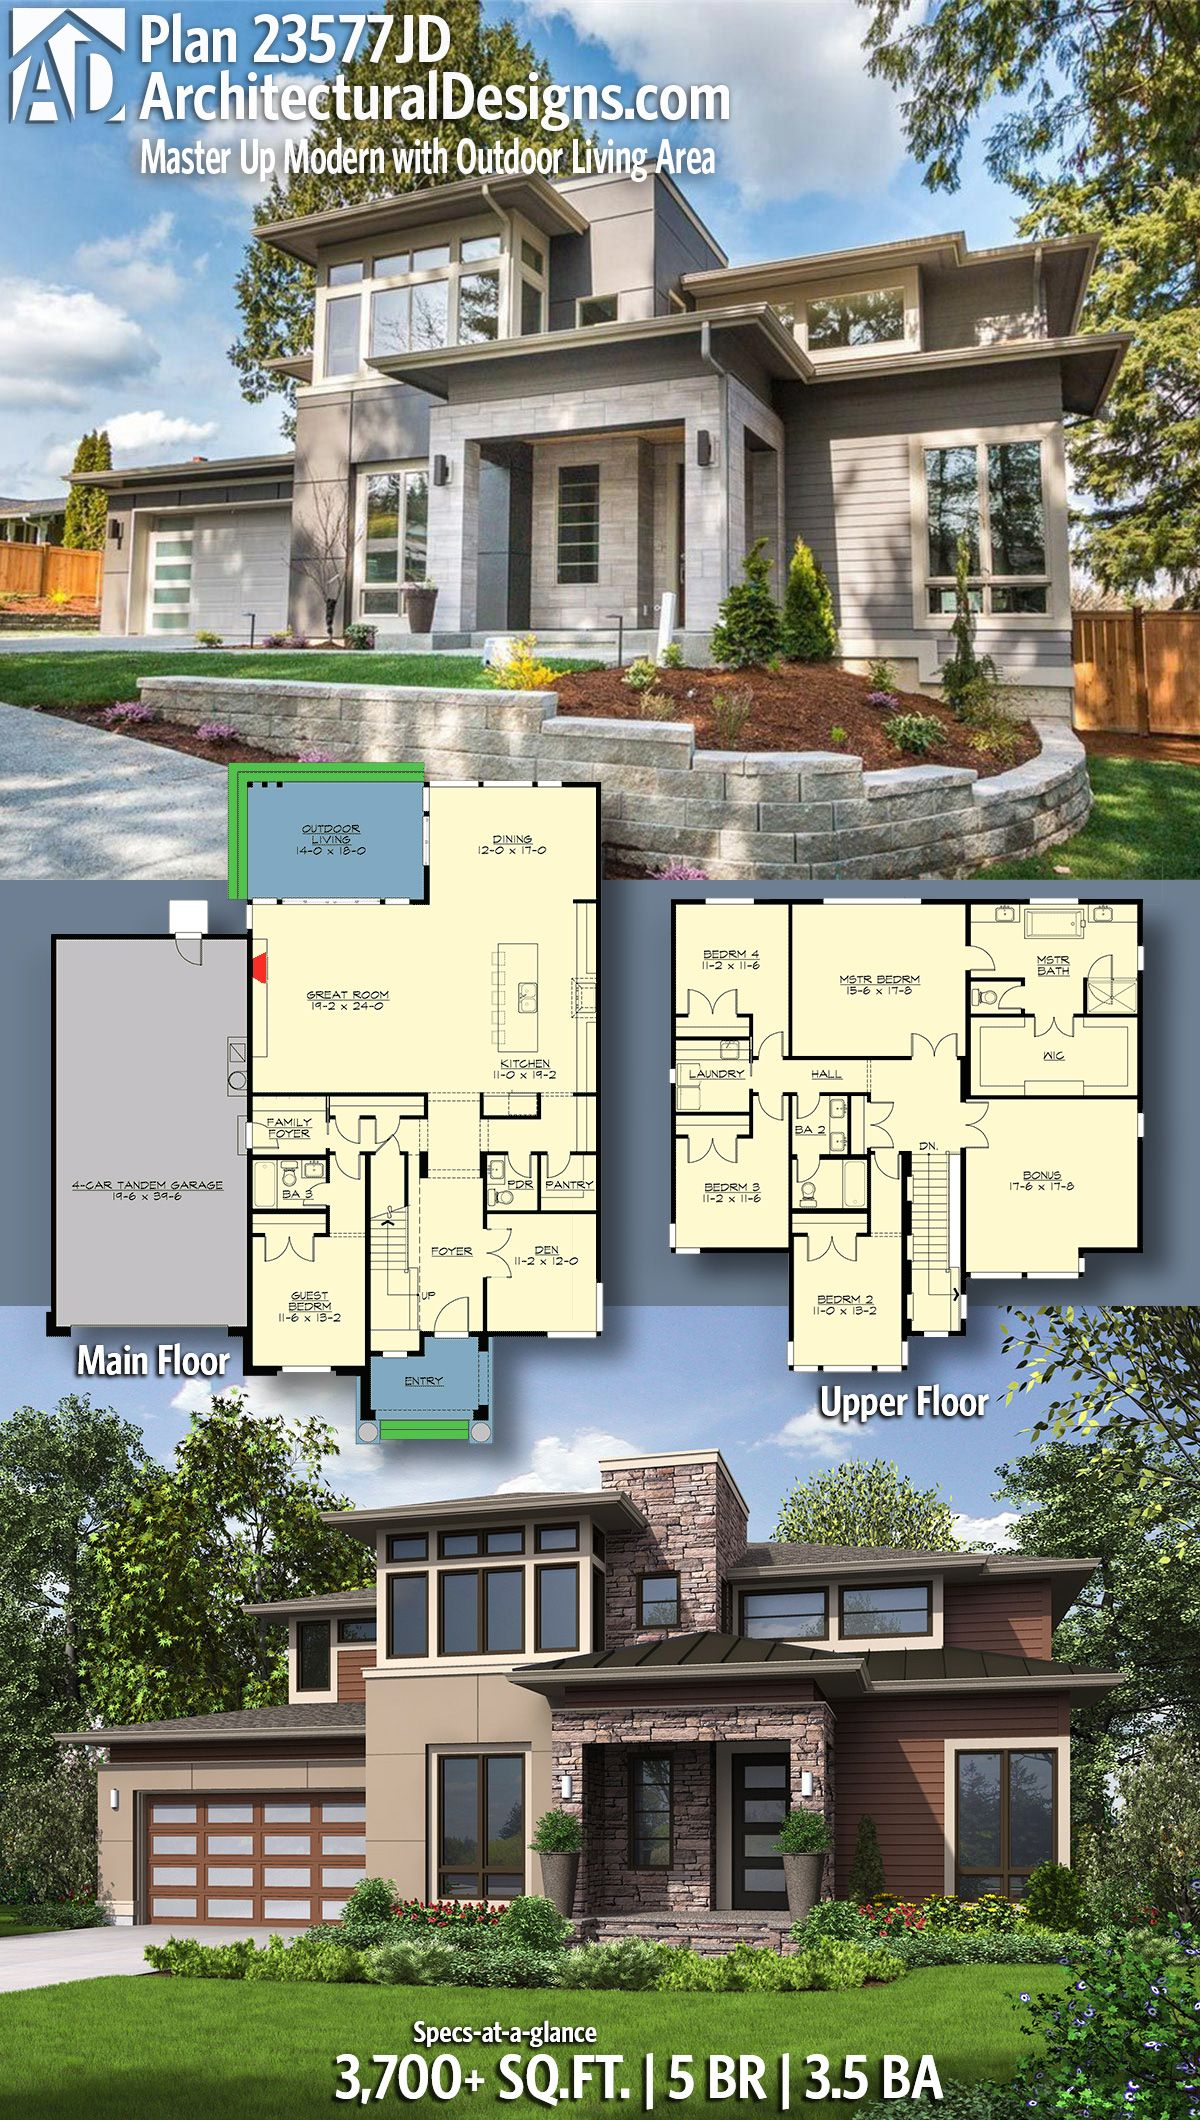 Plan 23577JD Master Up Modern with